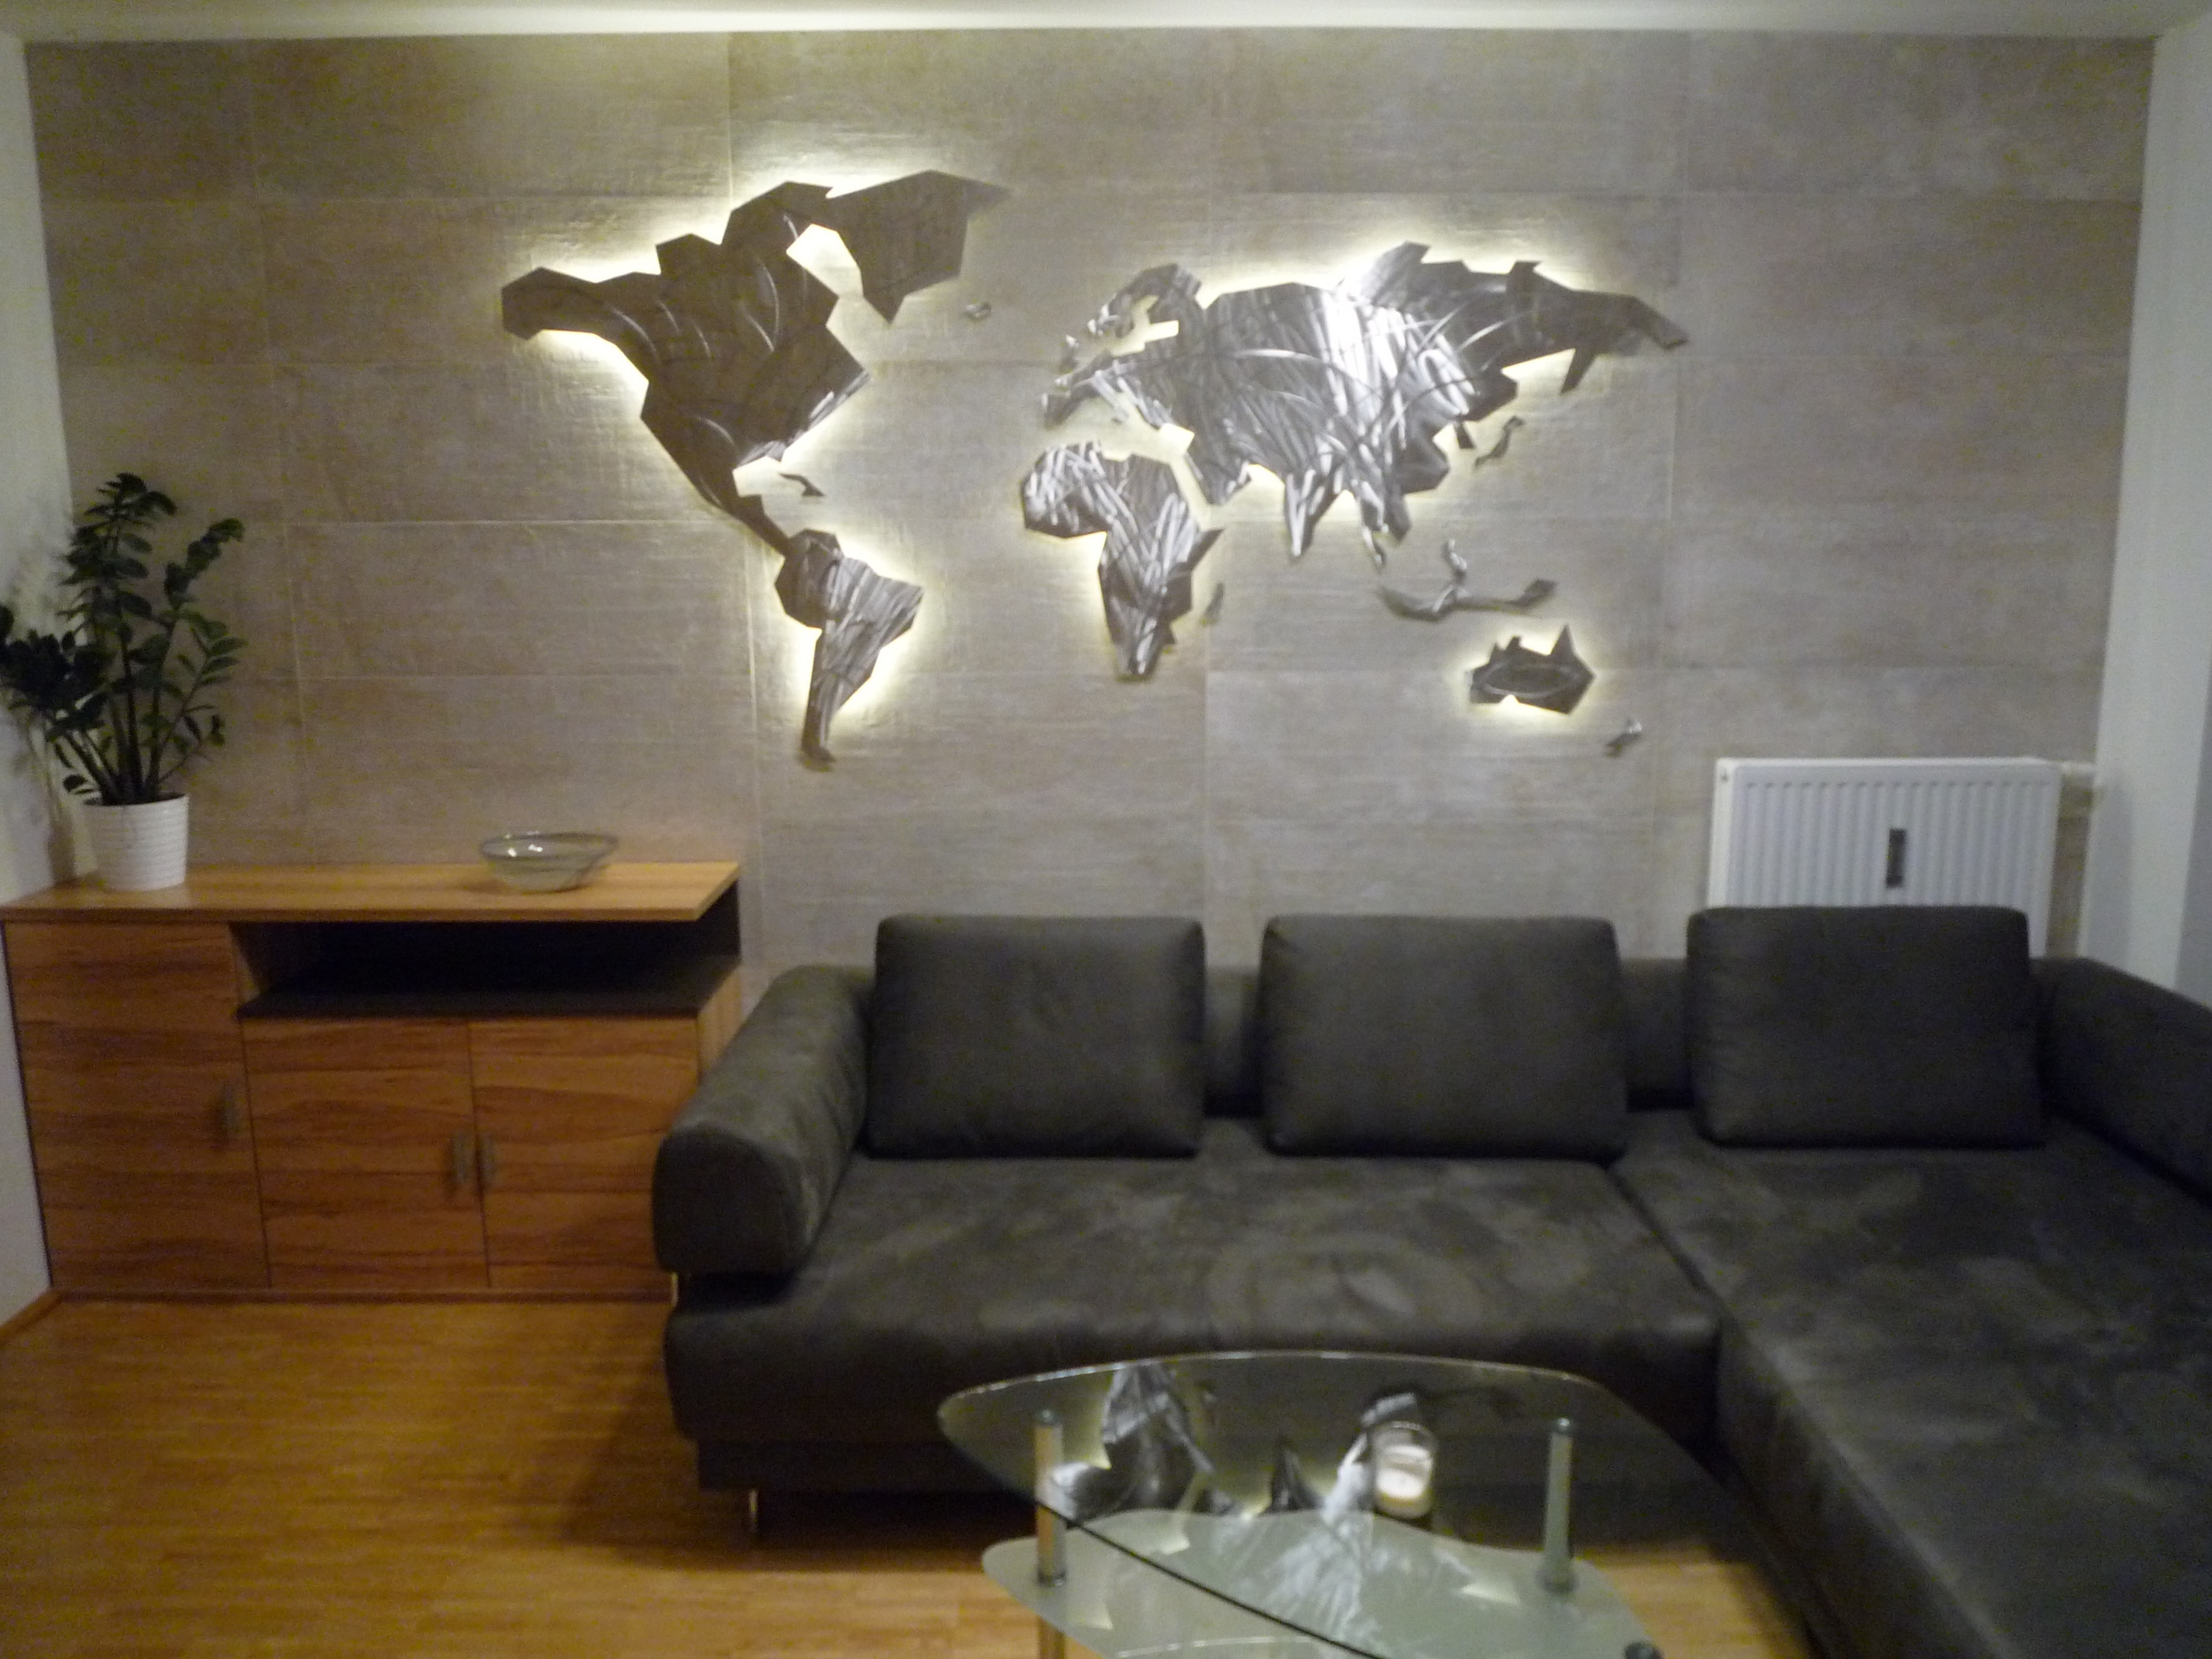 39 Inspirational World Map Wall Art Framed Design Ideas Of Led Wall Pertaining To World Map Wall Art Framed (Photo 8 of 20)